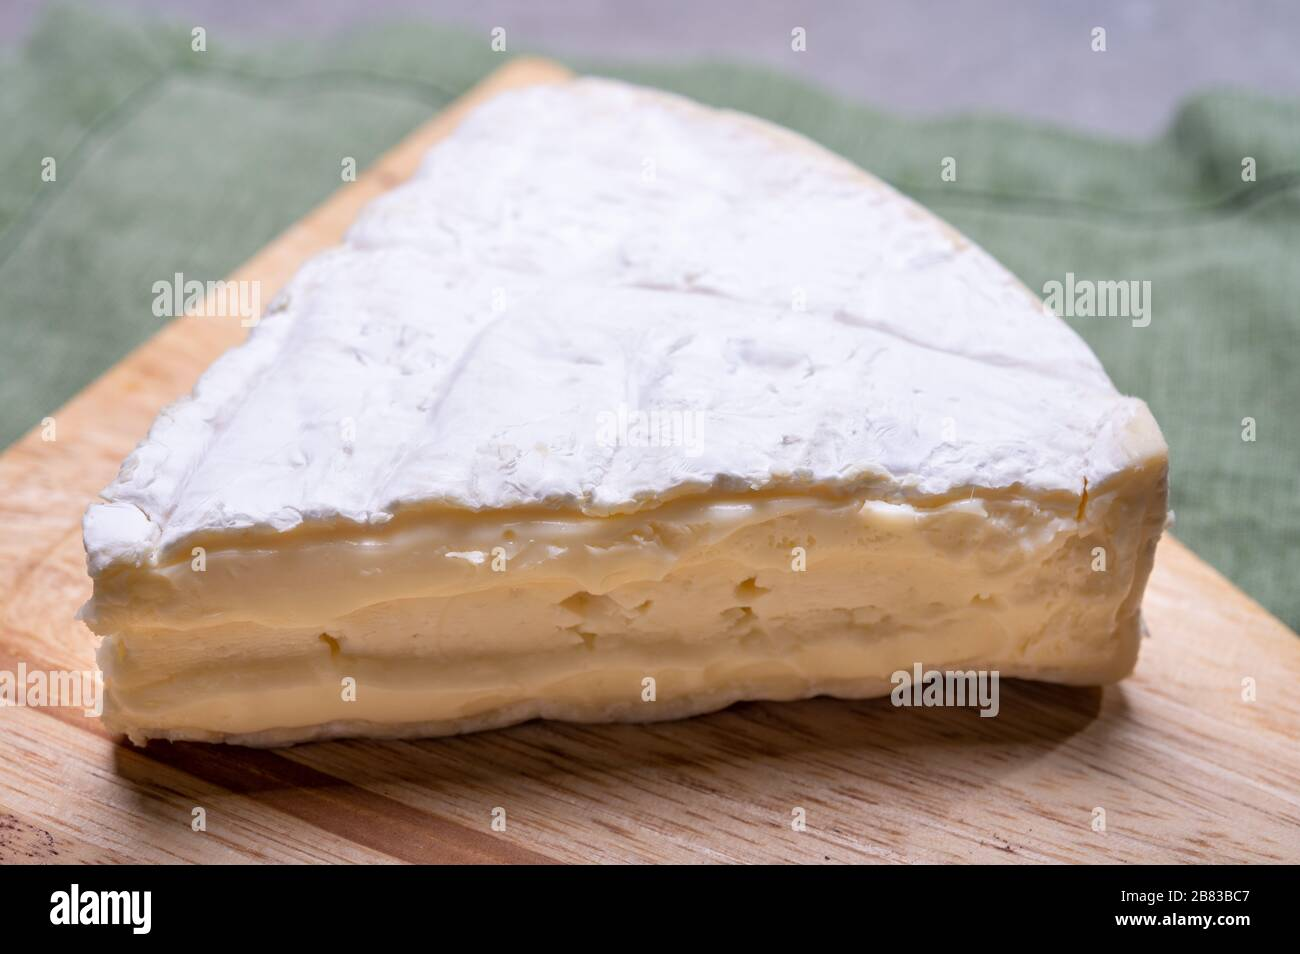 French Cheese Camembert Made From Cow Milk In Normandy France Close Up Stock Photo Alamy